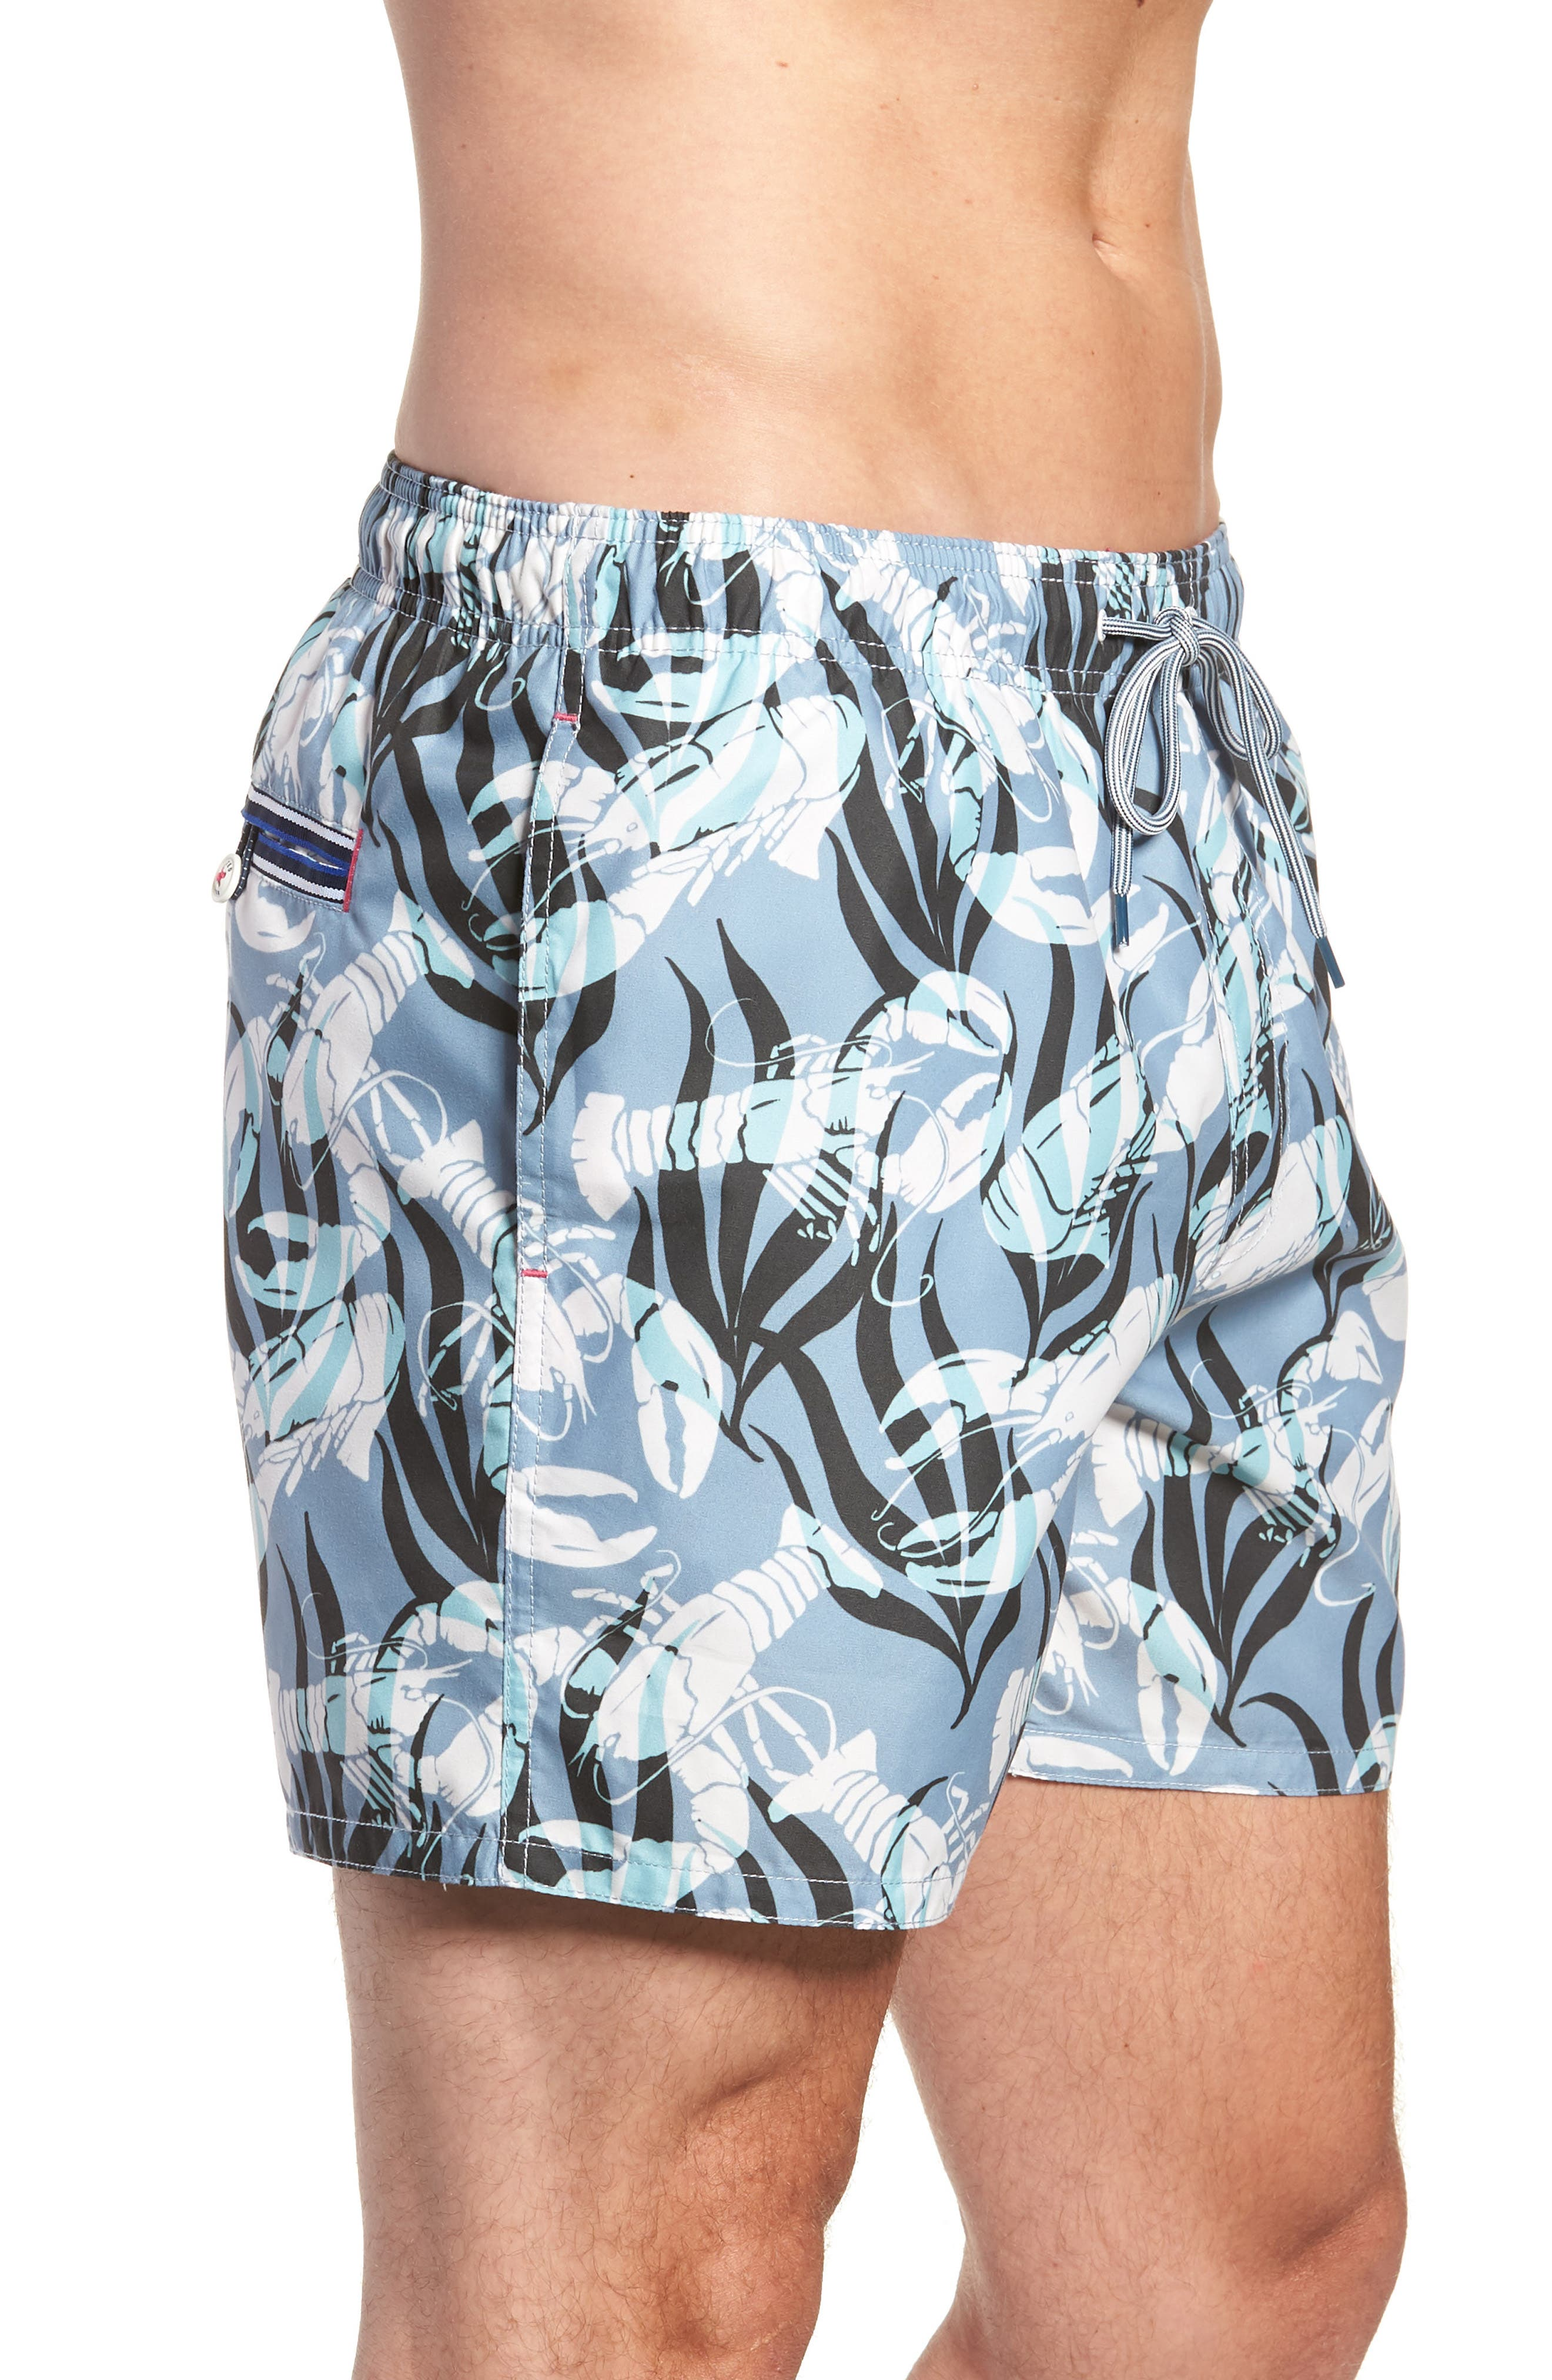 Yalow Slim Fit Lobster Swim Trunks,                             Alternate thumbnail 4, color,                             Blue